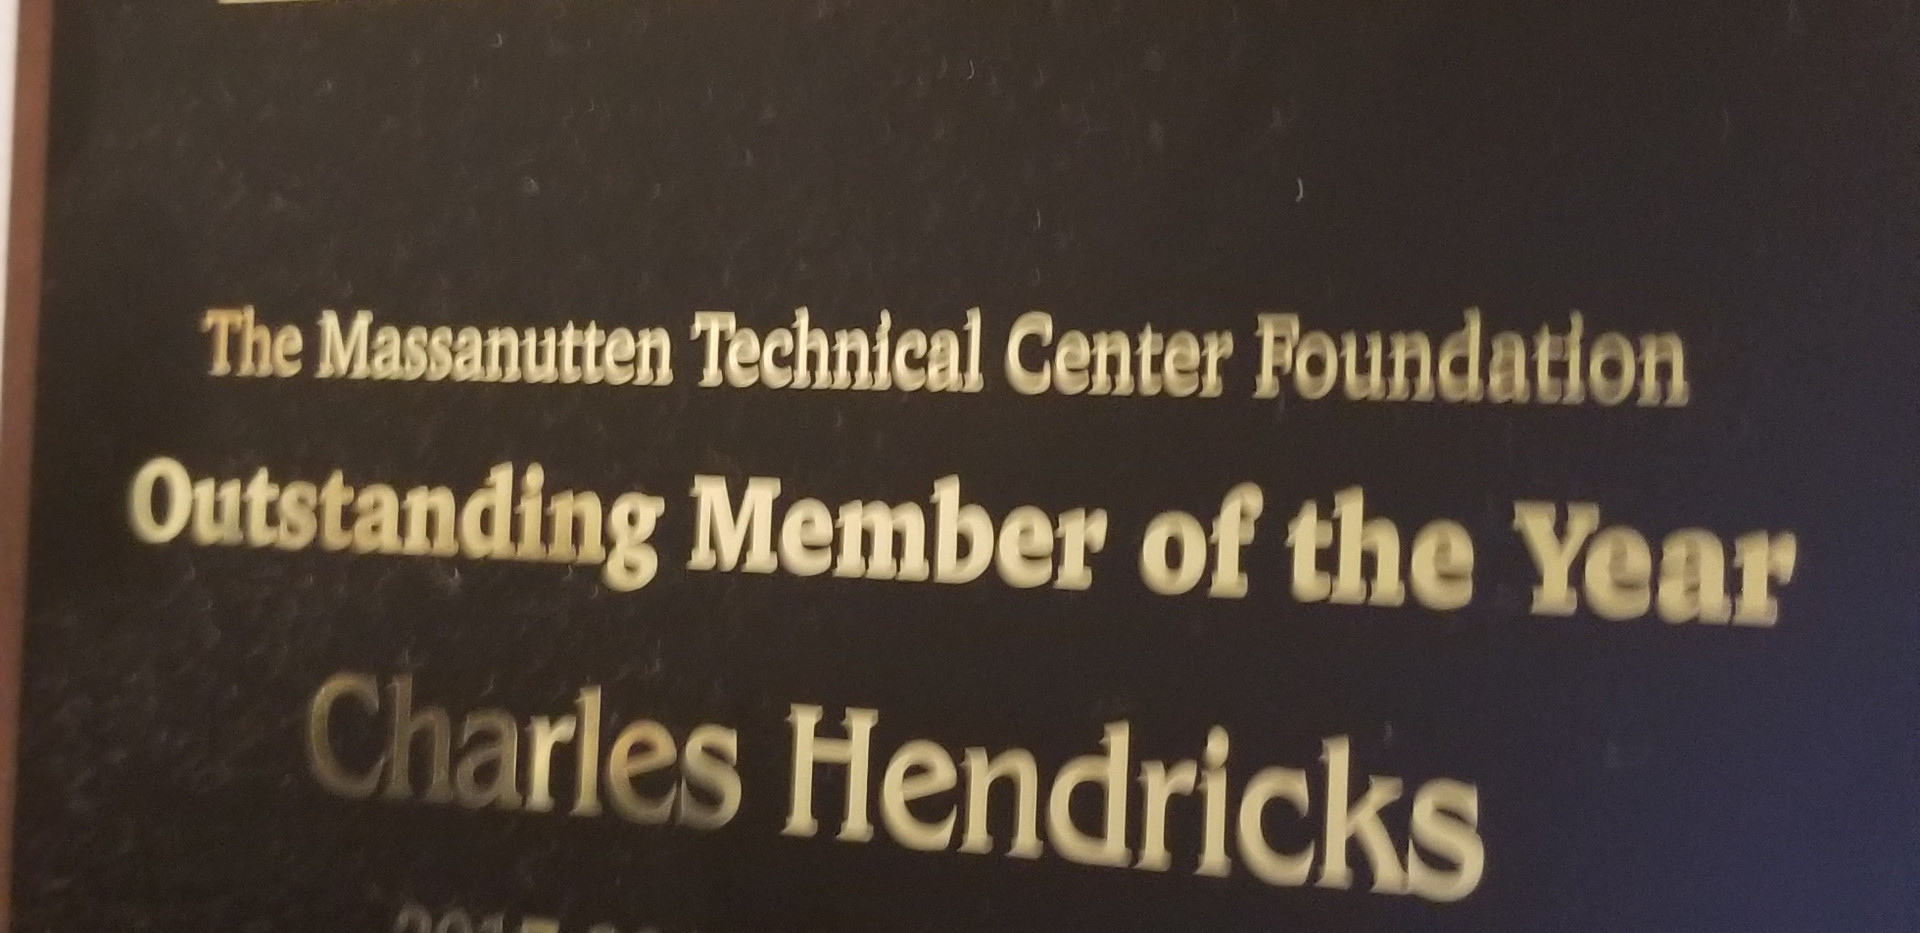 MTC Foundation Oustanding Member of the Year